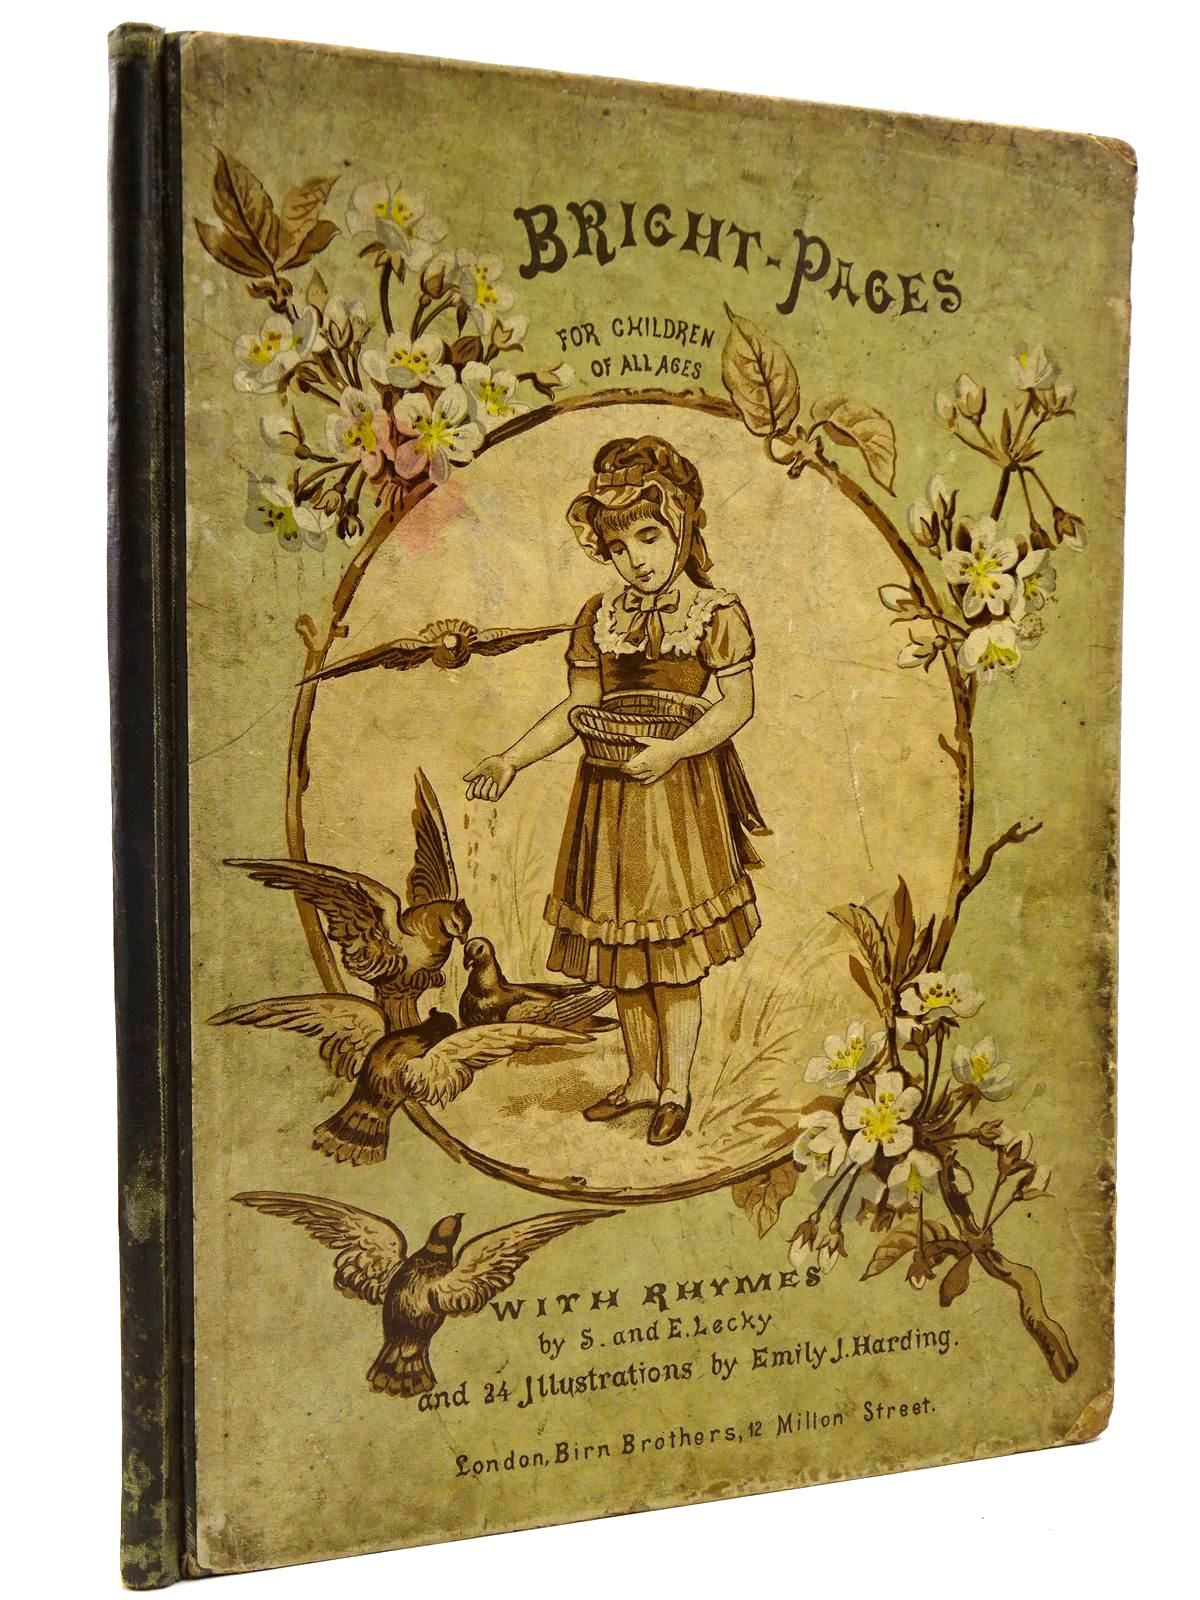 Photo of BRIGHT-PAGES FOR CHILDREN OF ALL AGES